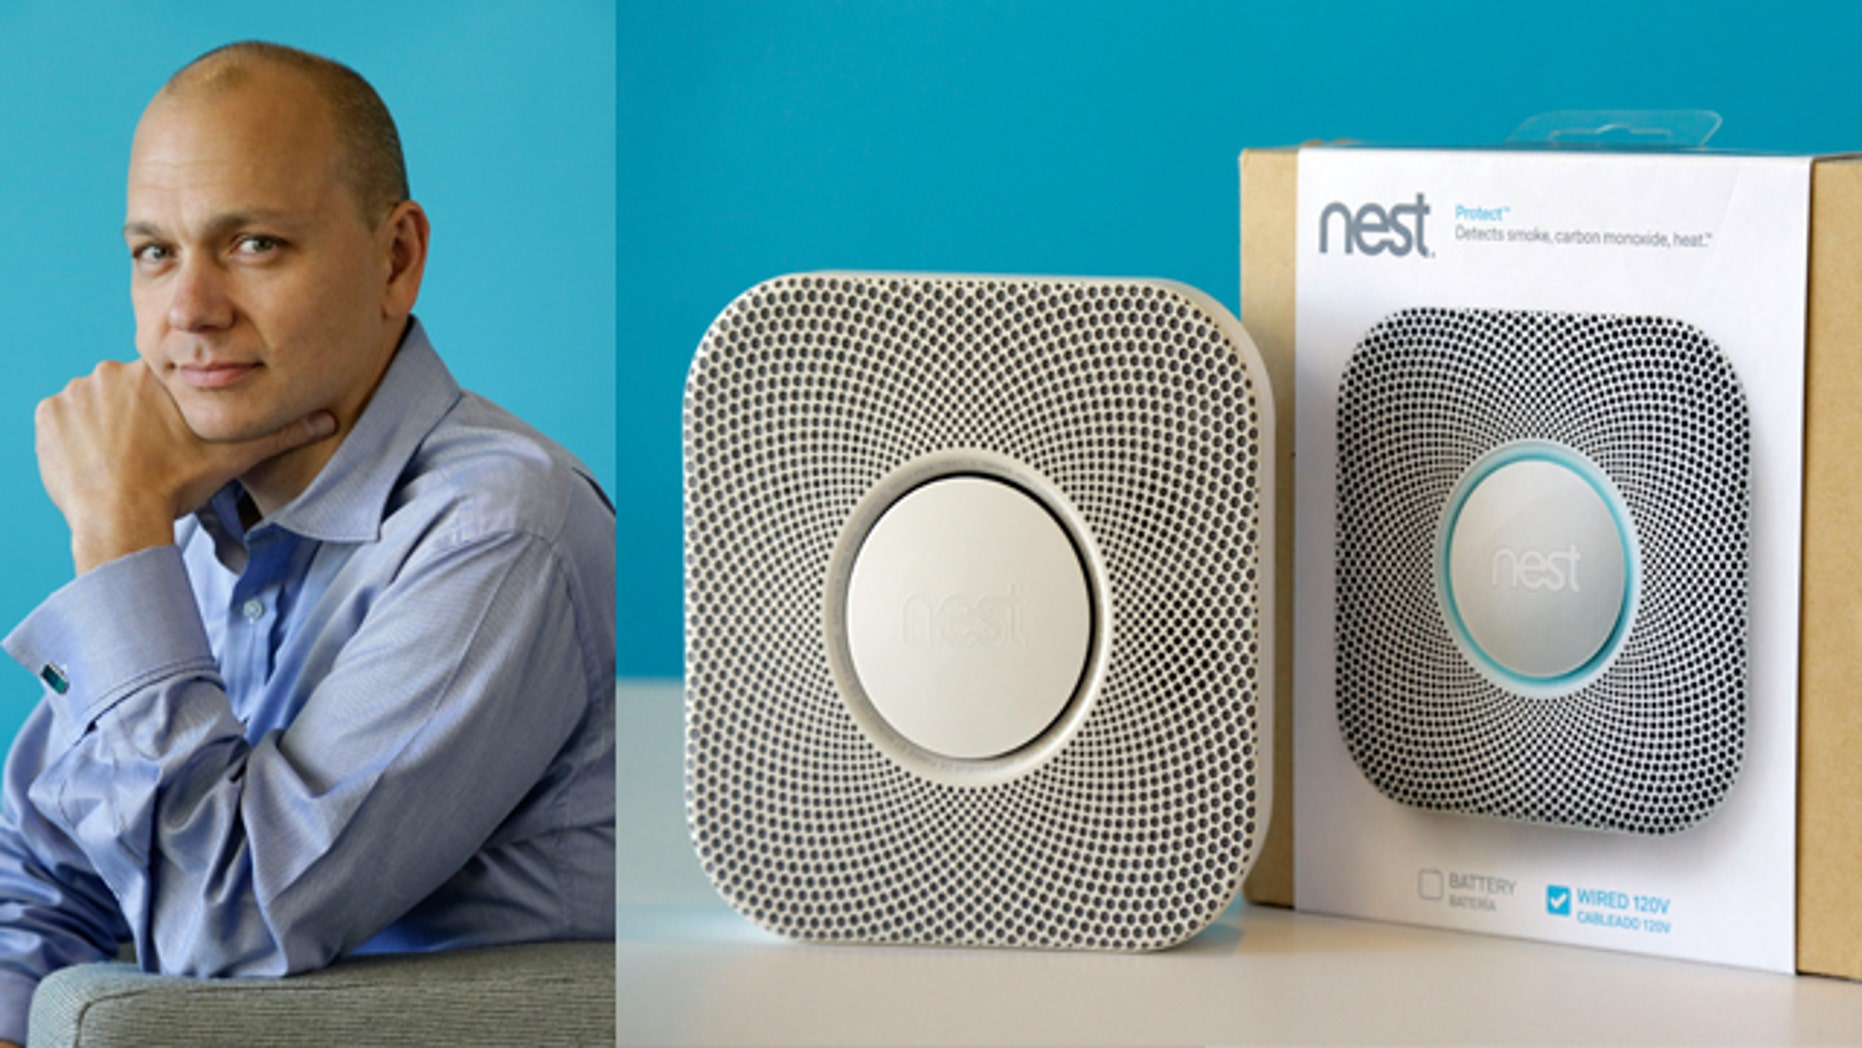 ILE - In this Tuesday, Oct. 1, 2013, file photo, Tony Fadell, Founder and CEO of Nest, poses for a portrait in the company's offices in Palo Alto, Calif. Google said Monday, Jan. 13, 2014, it will pay $3.2 billion to buy Nest Labs, which develops high-tech versions of devices like thermostats and smoke detectors